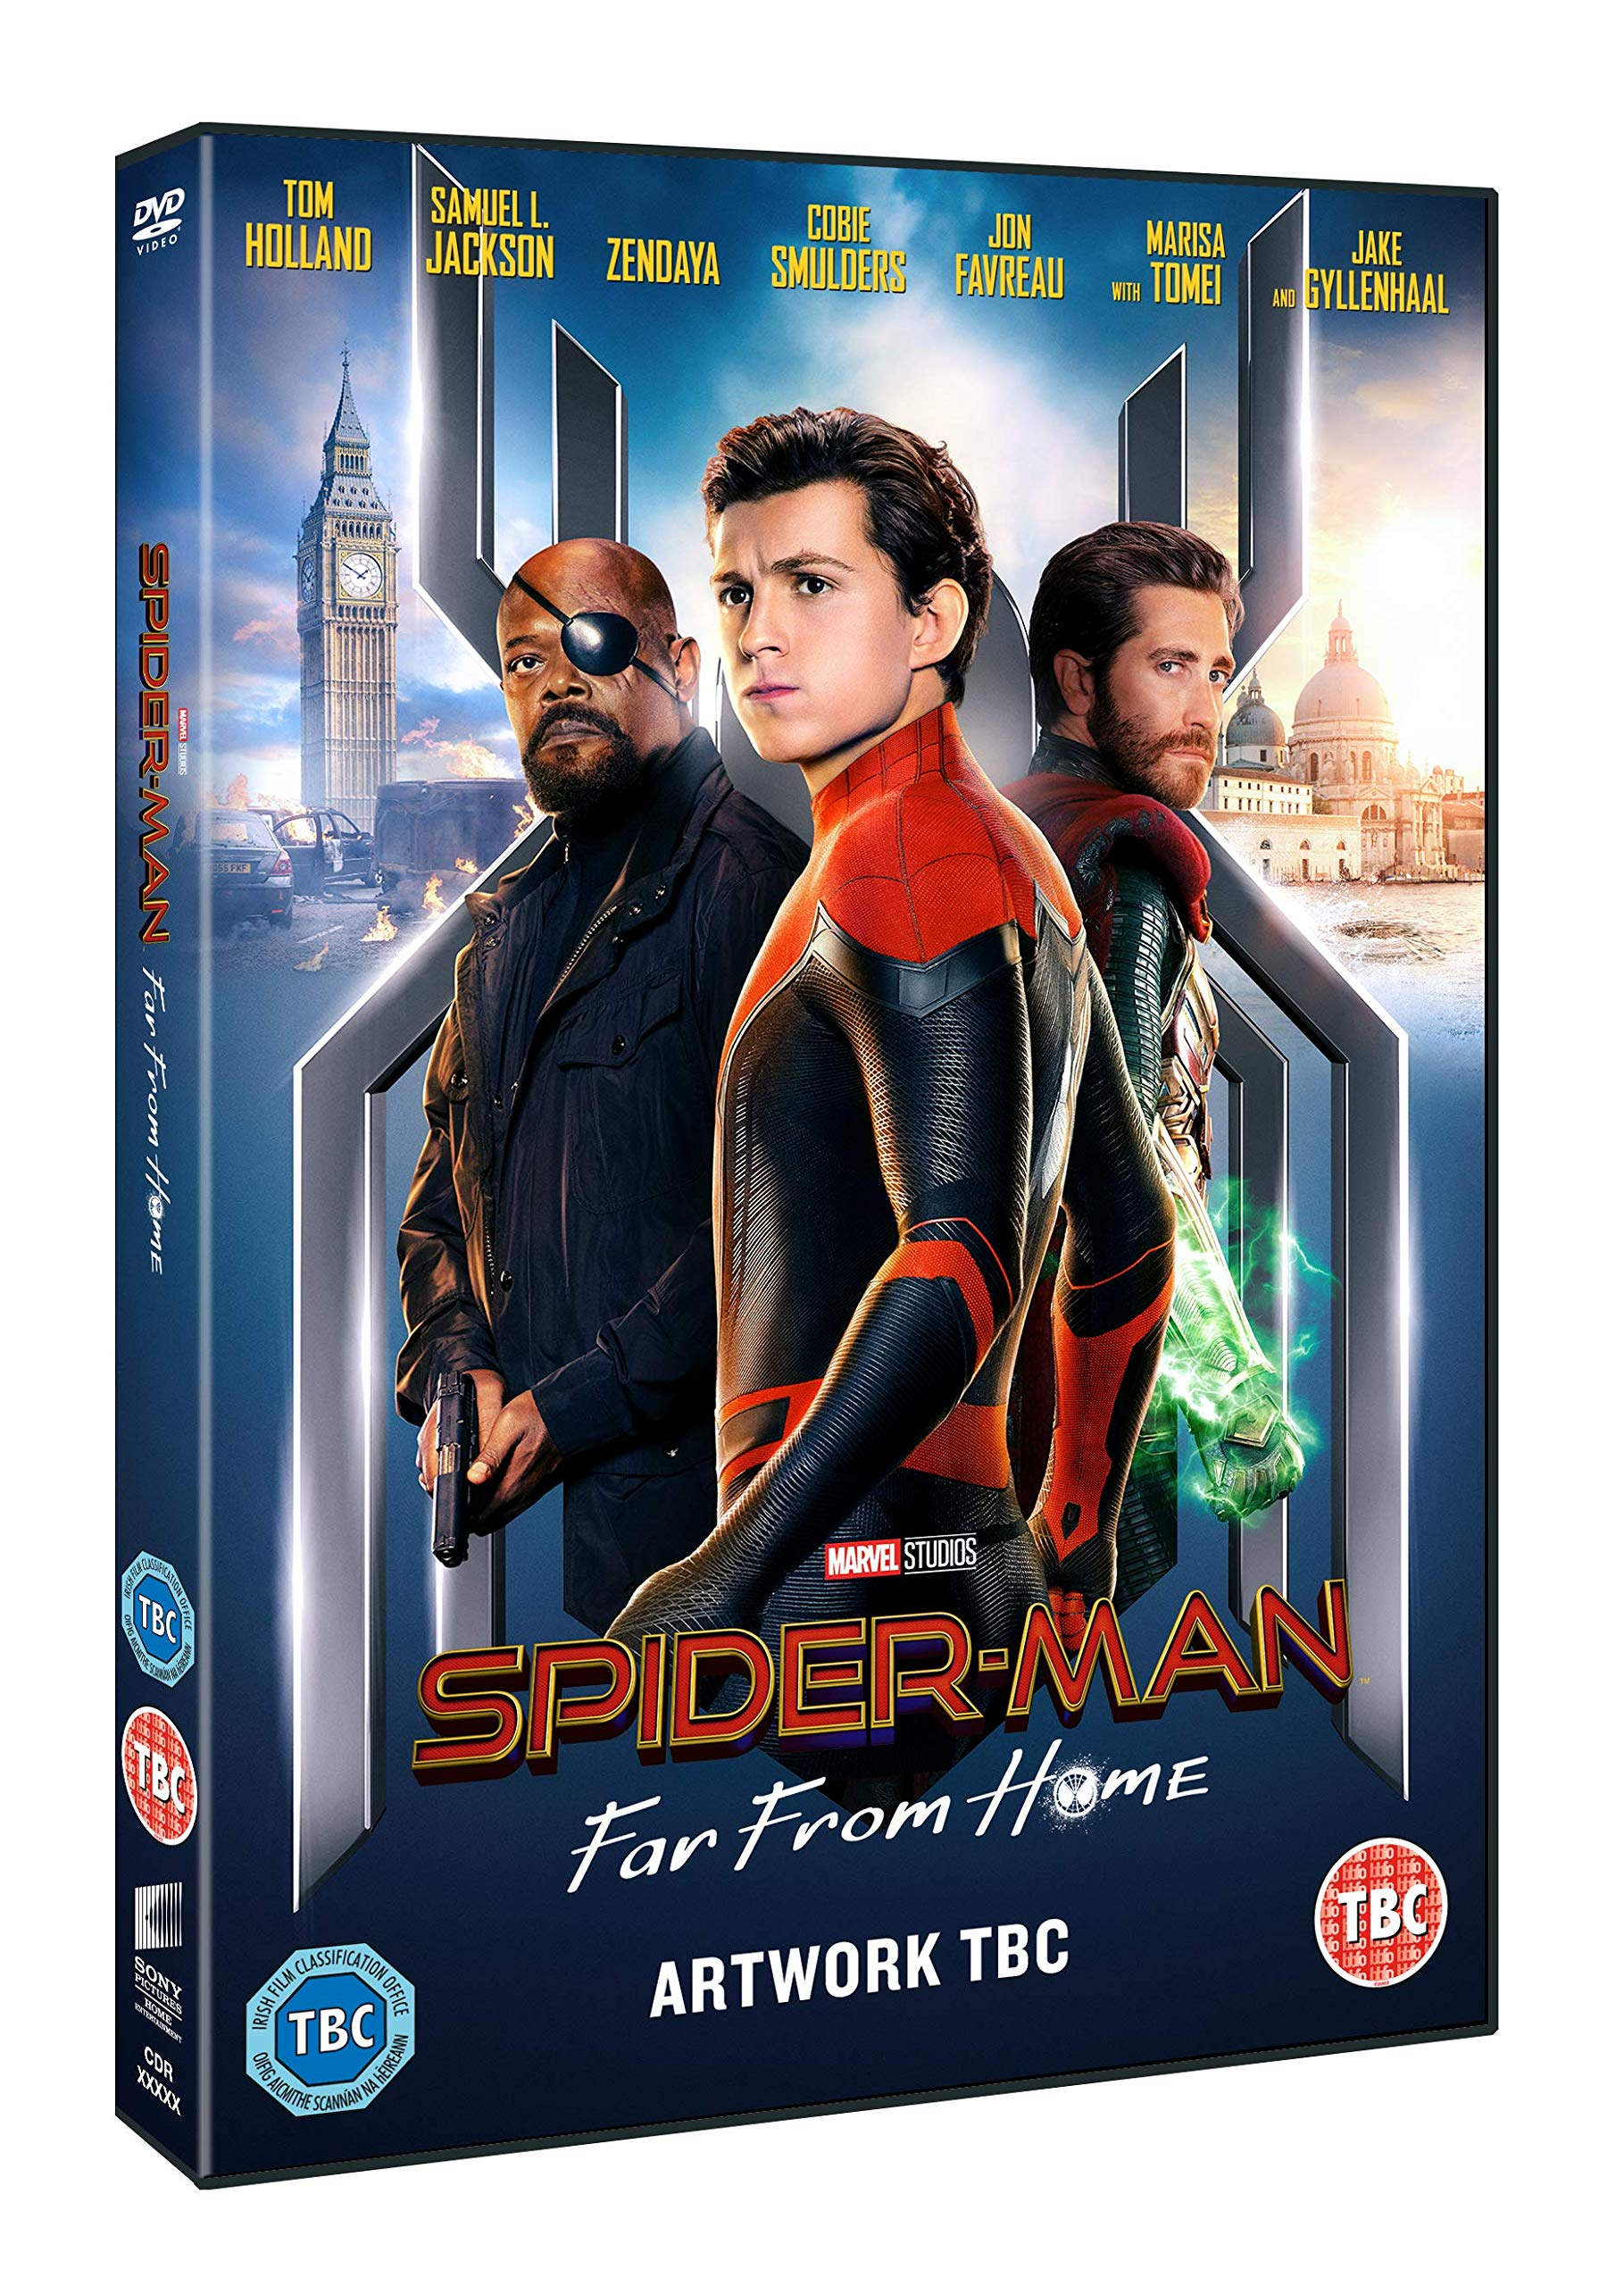 Pre-order any of the Spider-Man: Far From Home physical formats